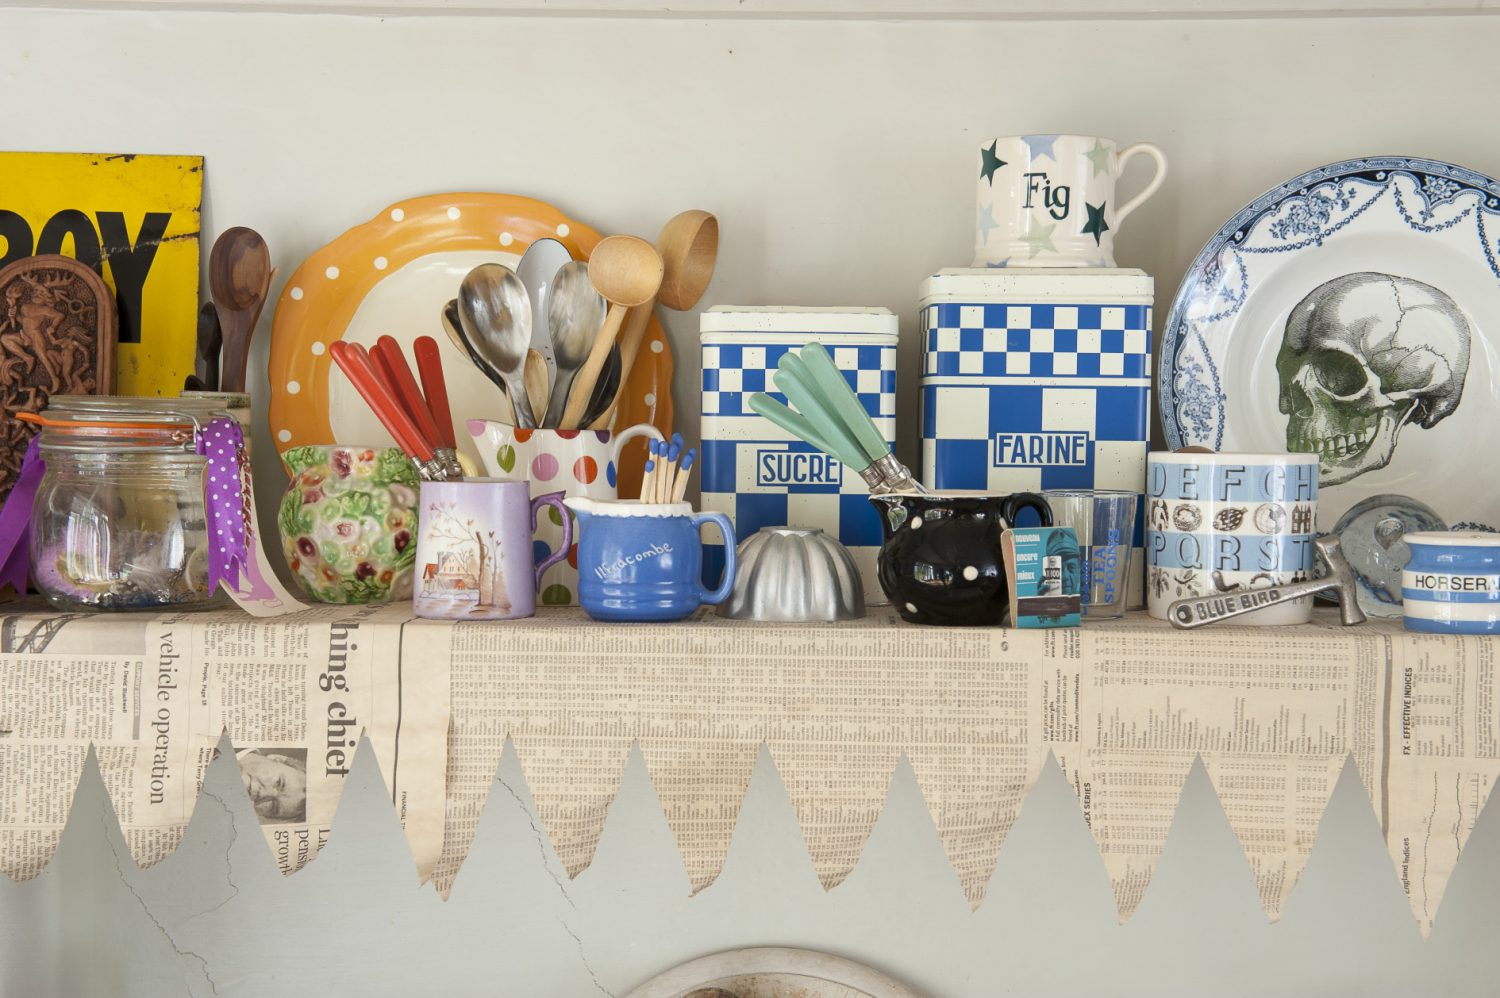 Above the old-fashioned, porcelain sink, shelves that support a collection of Cornish creamware have been lined with newspaper with a precisely cut zigzag edge, so that it looks like bunting